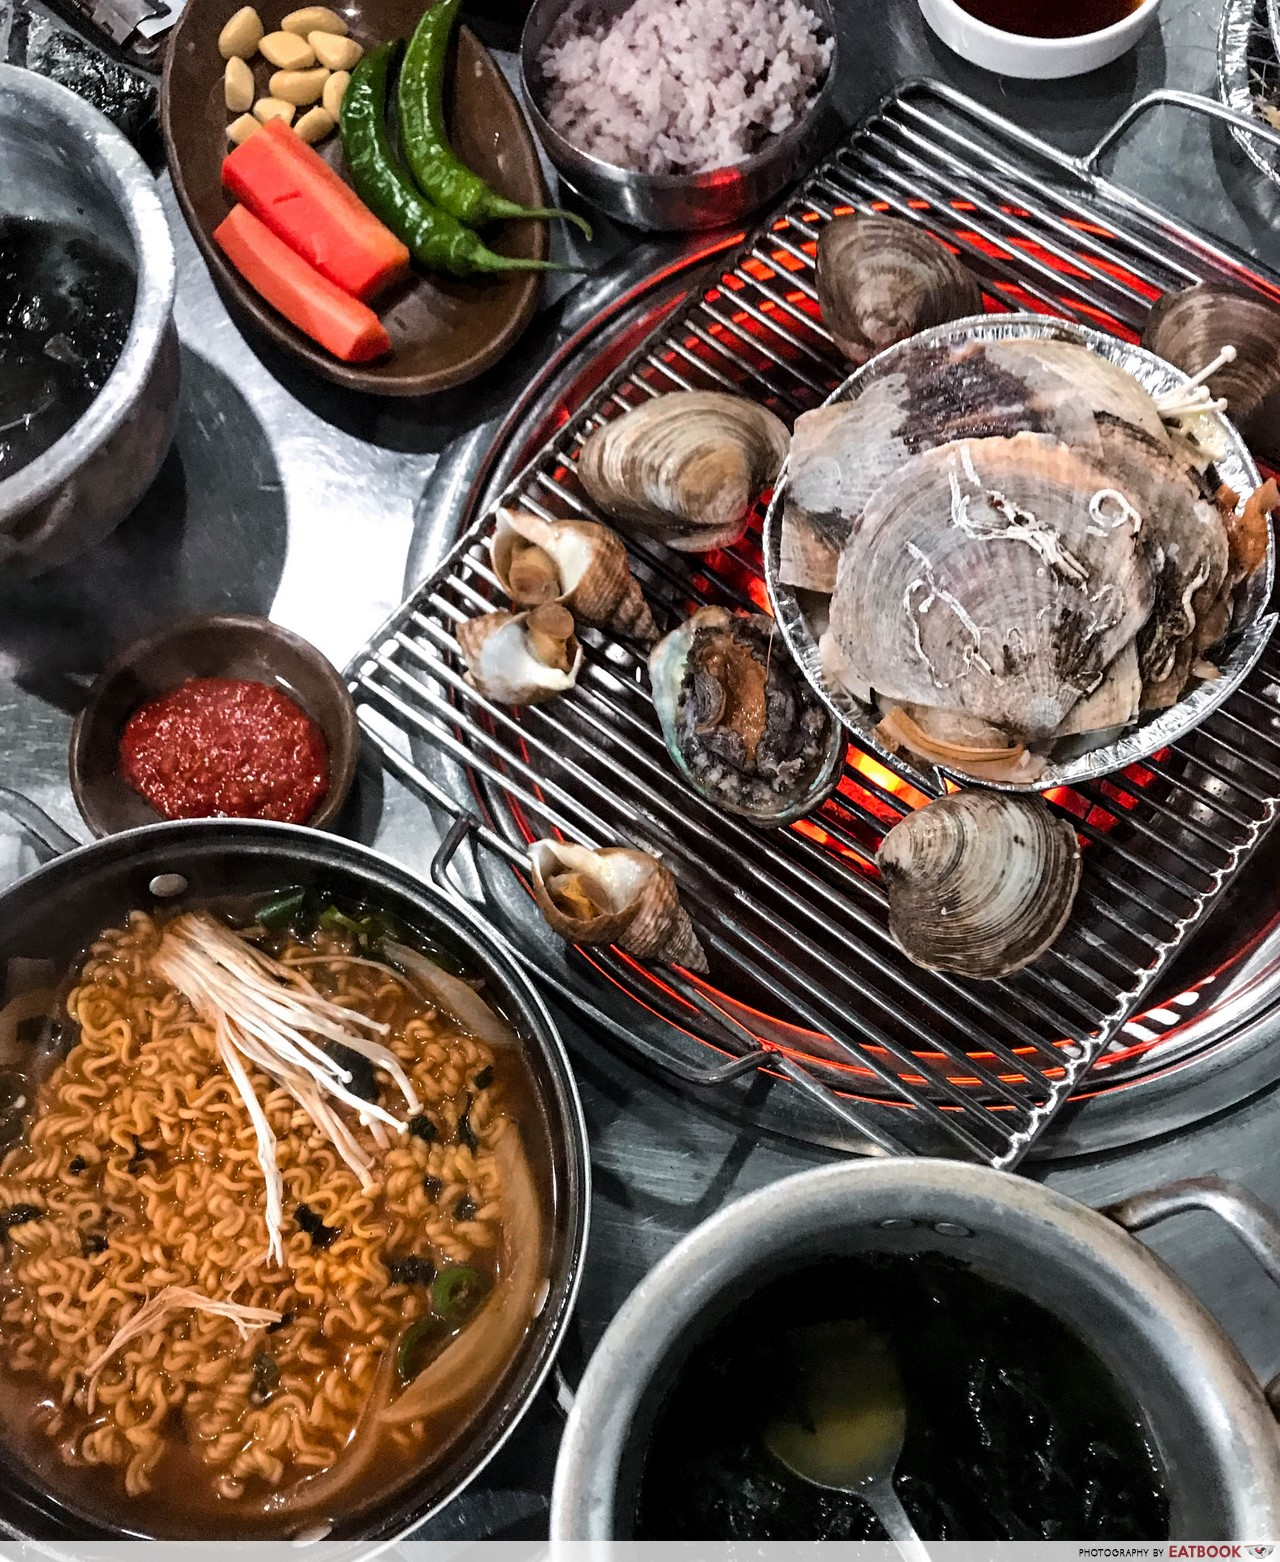 Halal Food places In Seoul - Cheongsapo Suminine